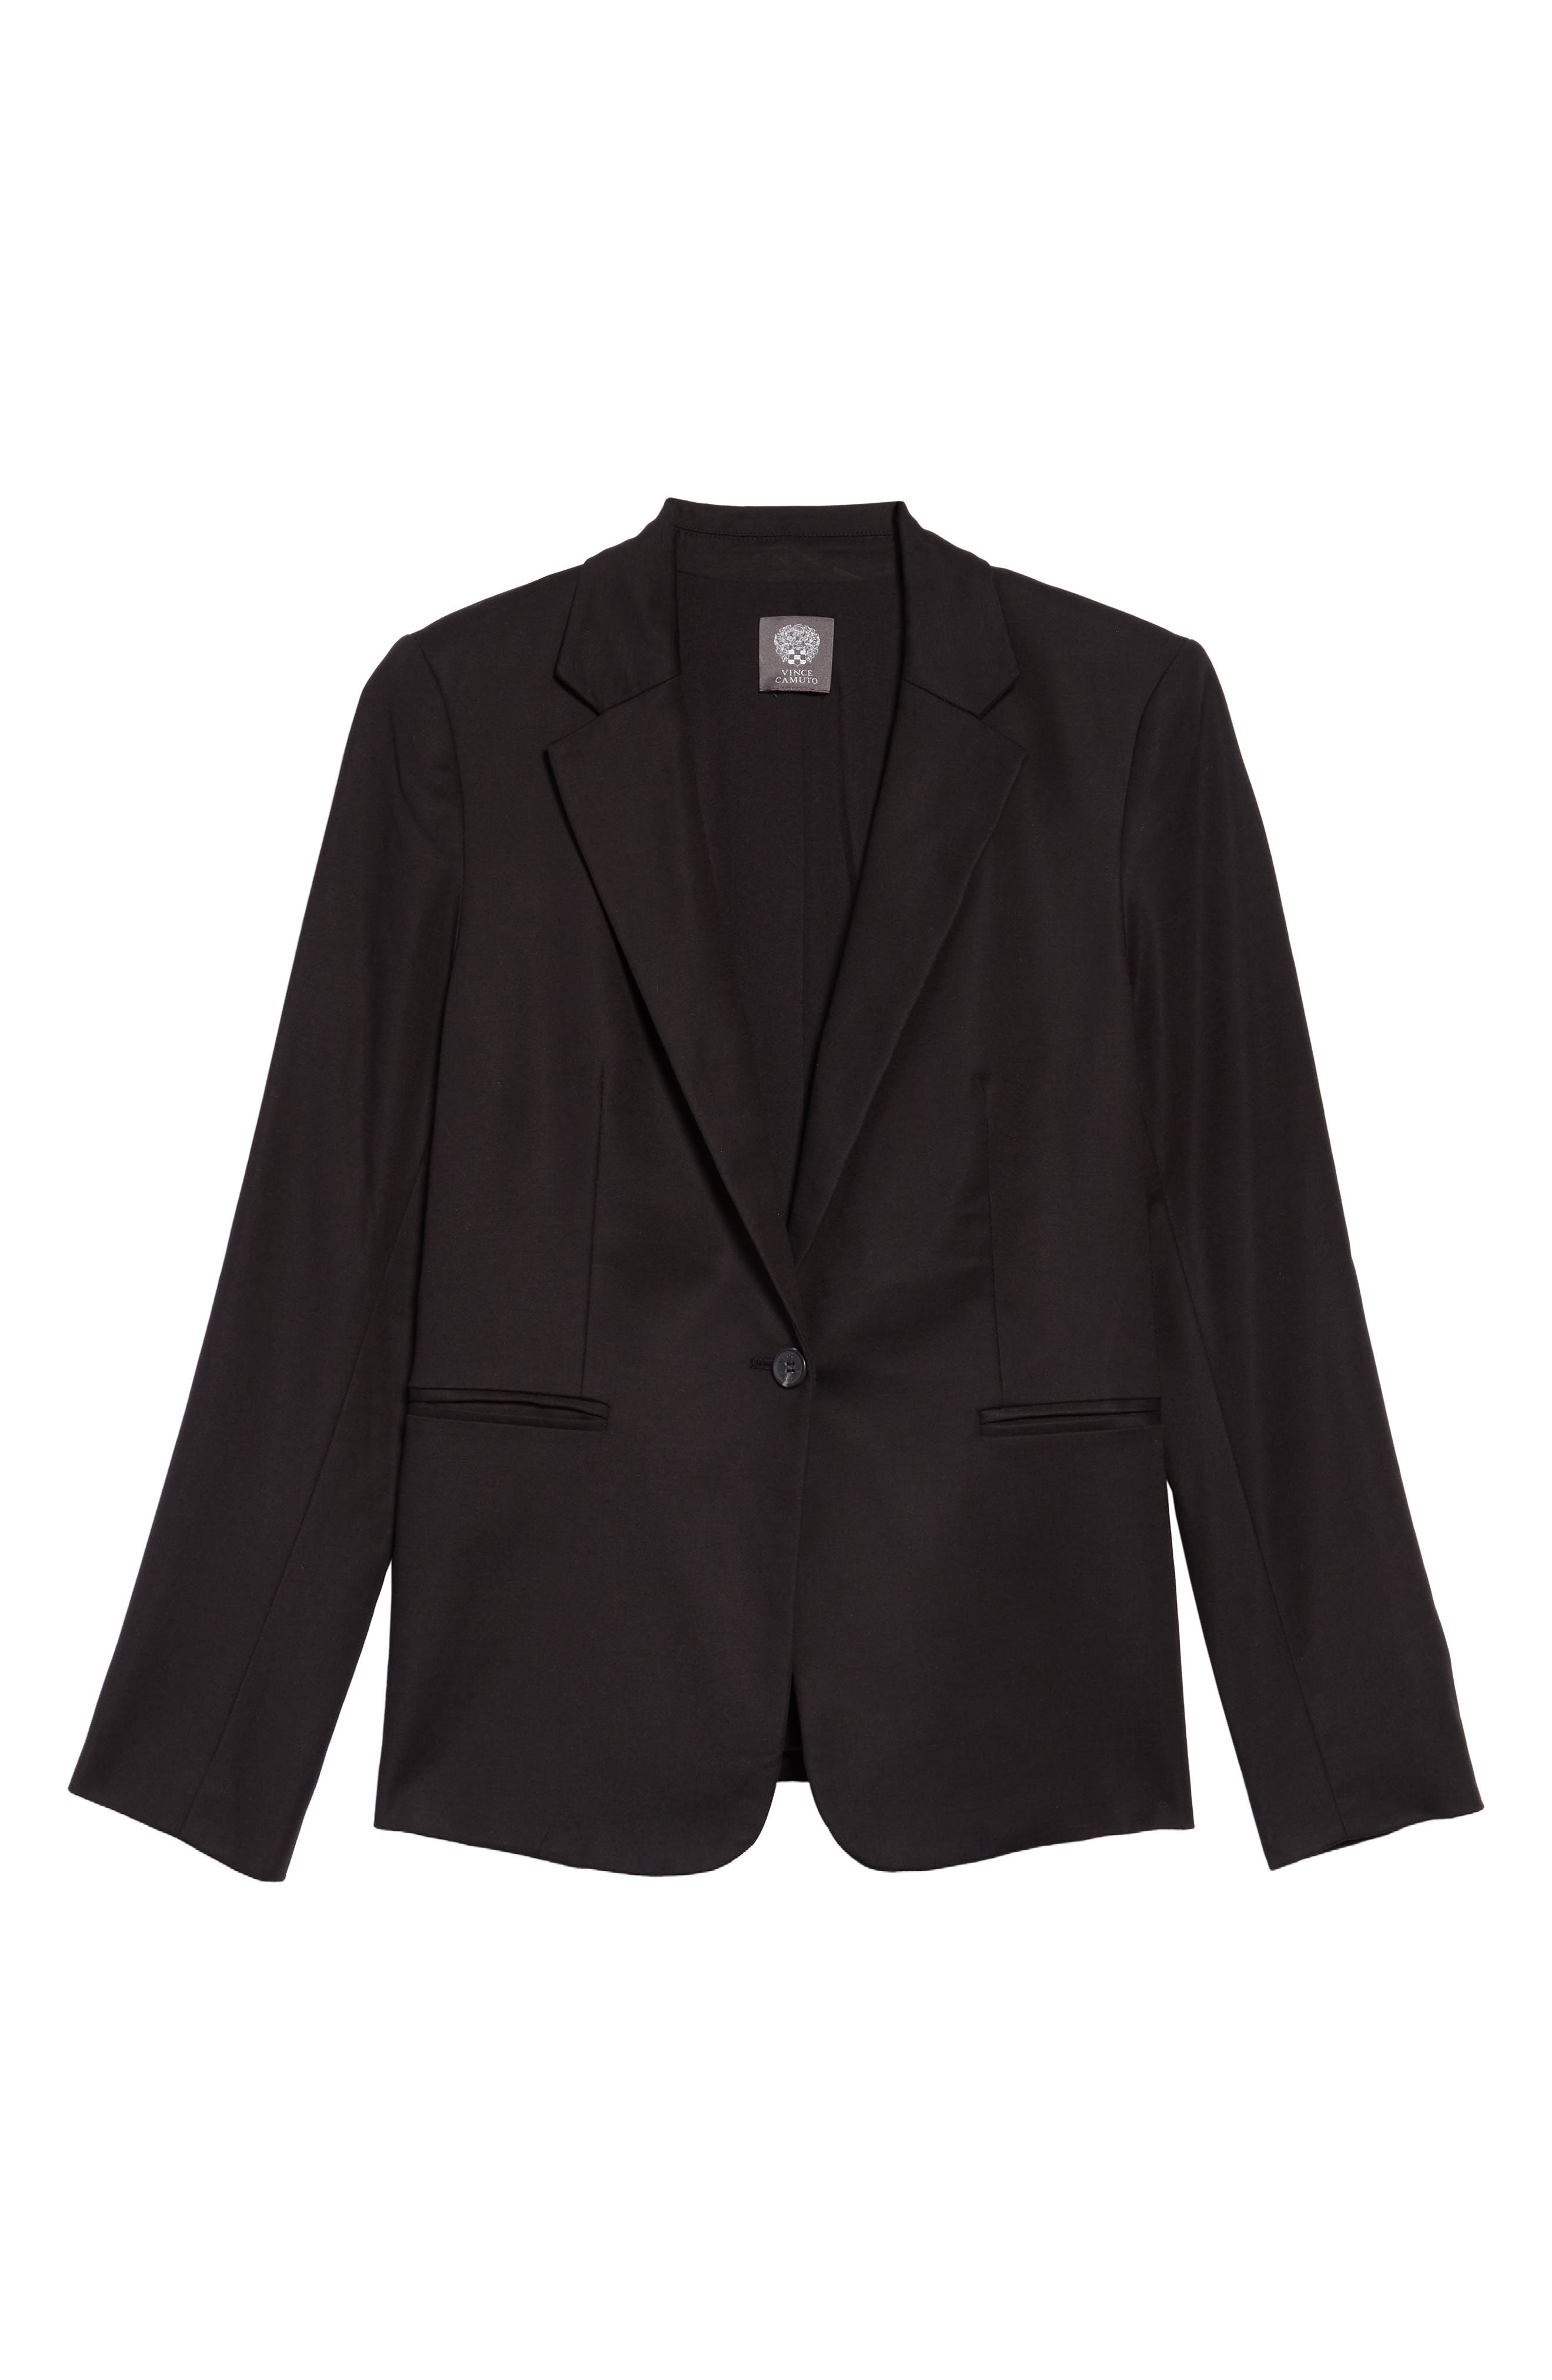 Lace-Up Back Double Weave Blazer,                             Alternate thumbnail 4, color,                             RICH BLACK